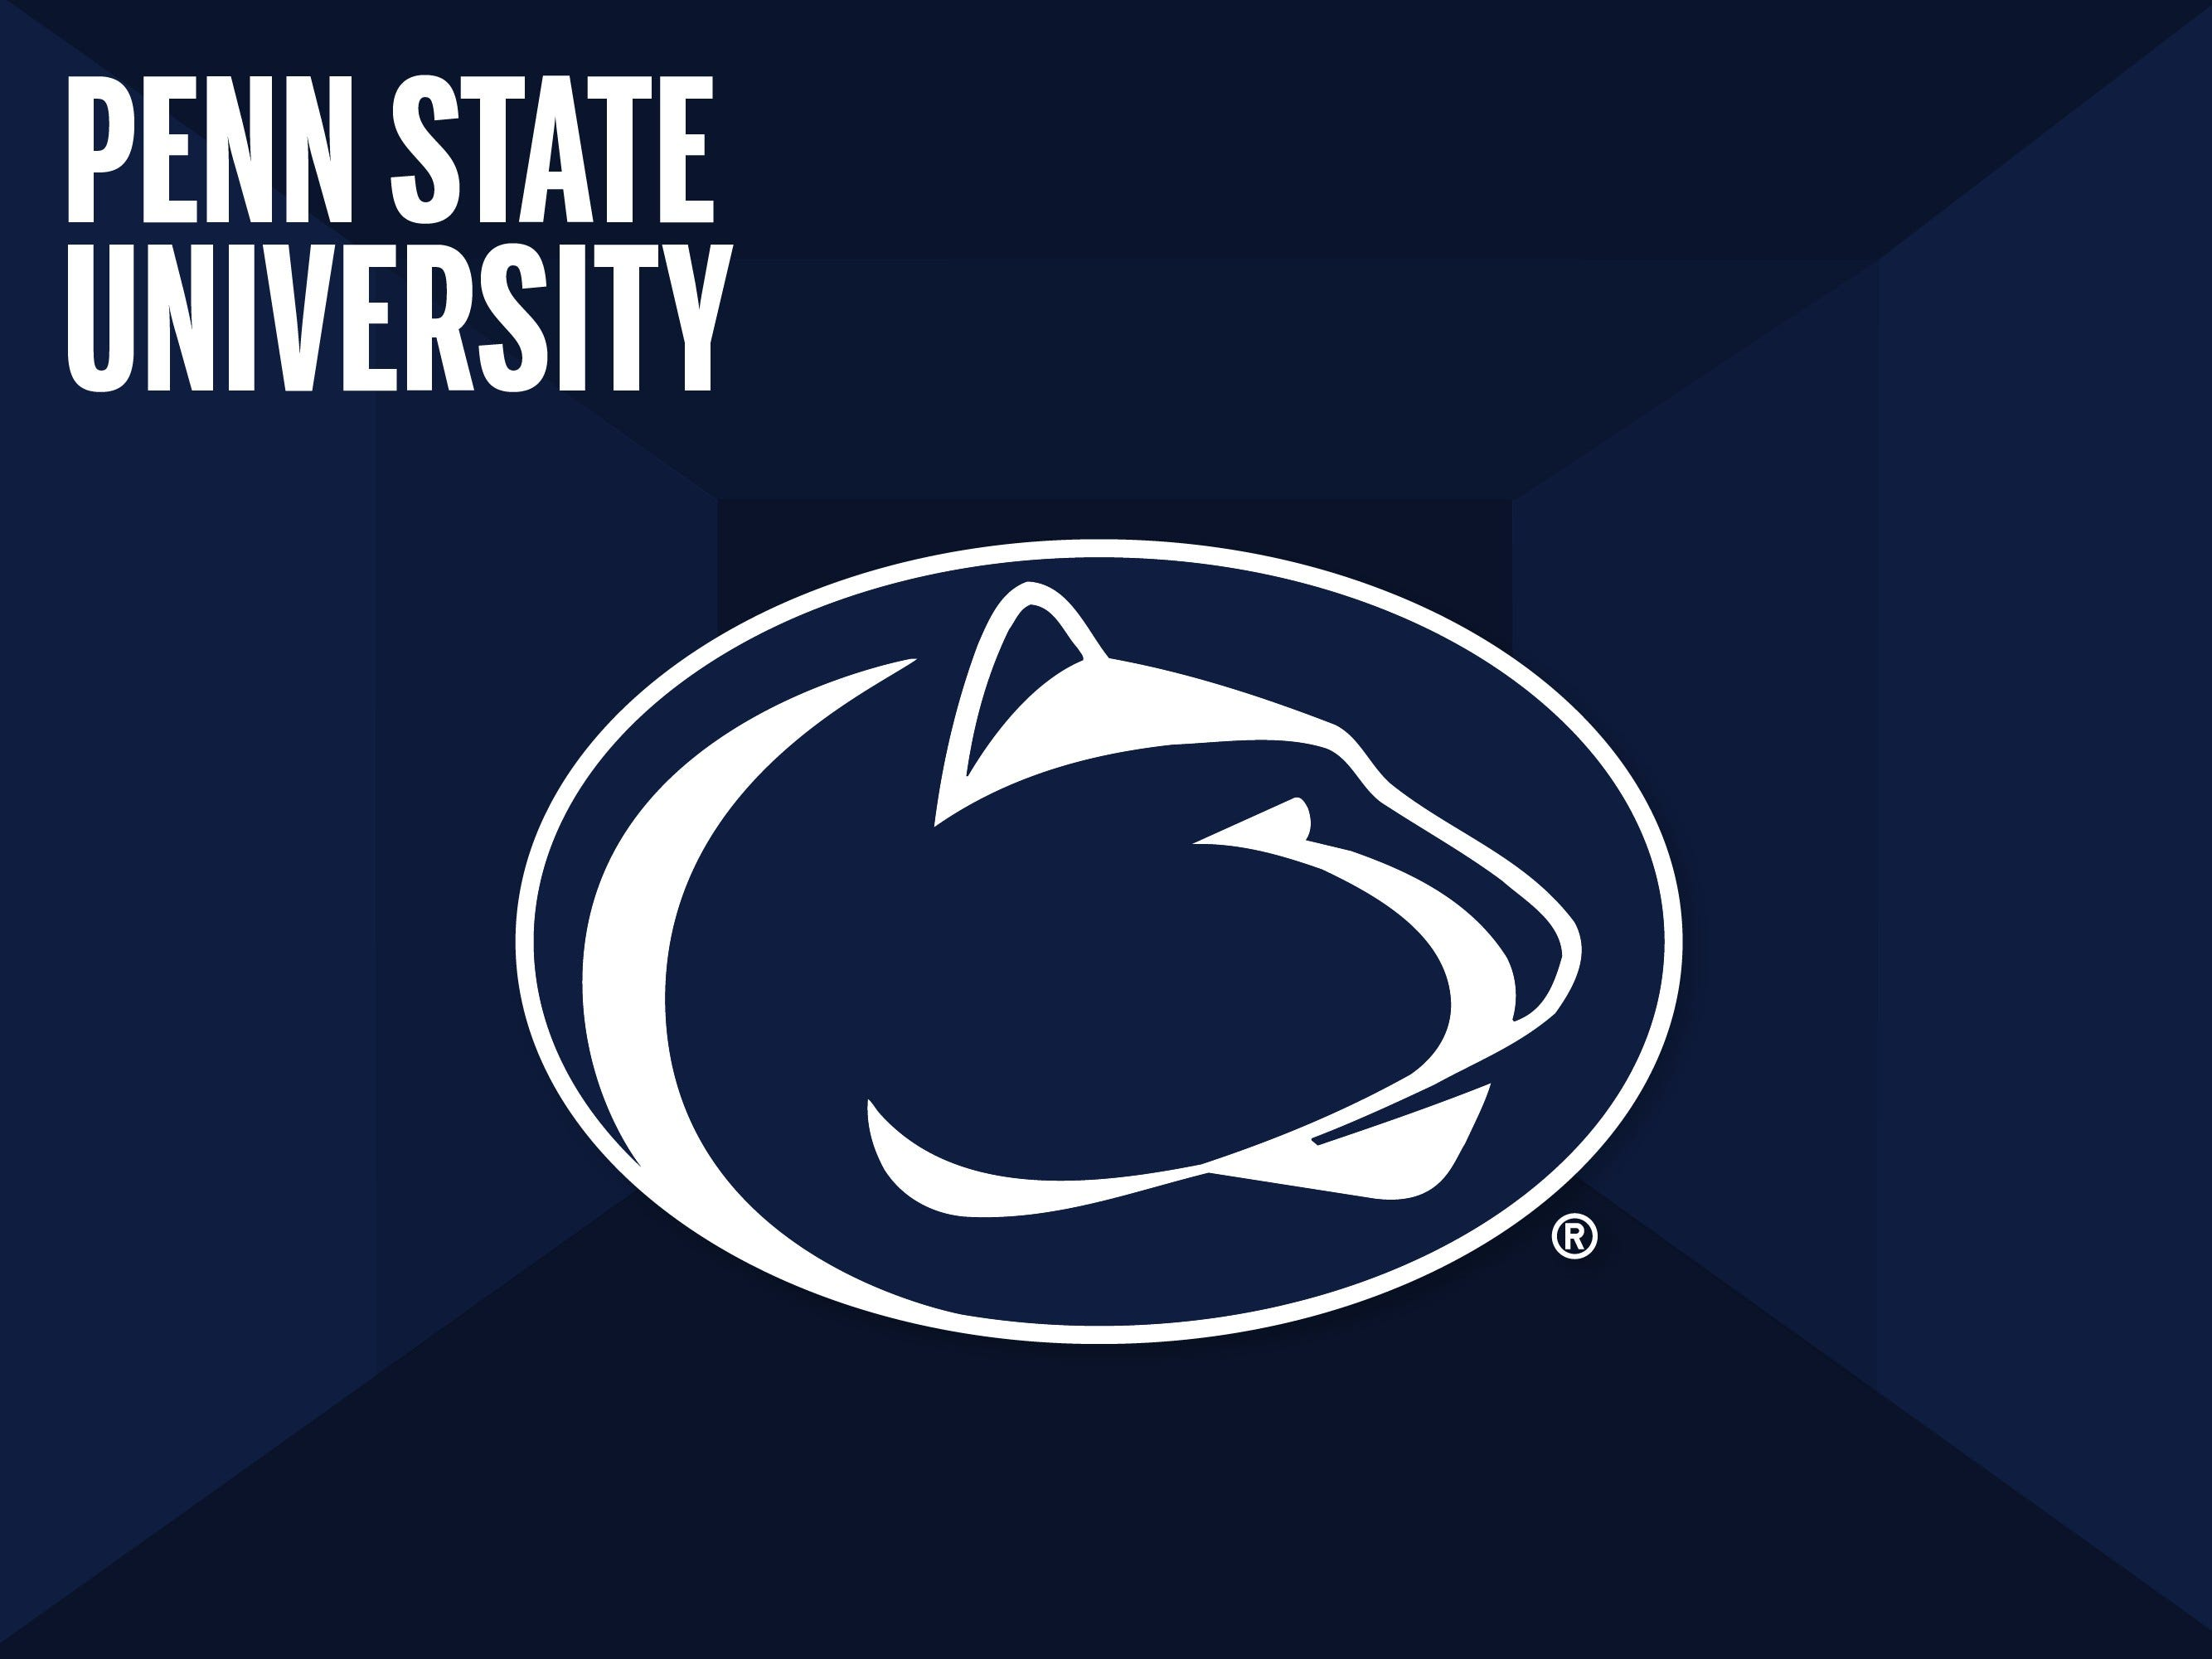 Penn State University College Football Shop